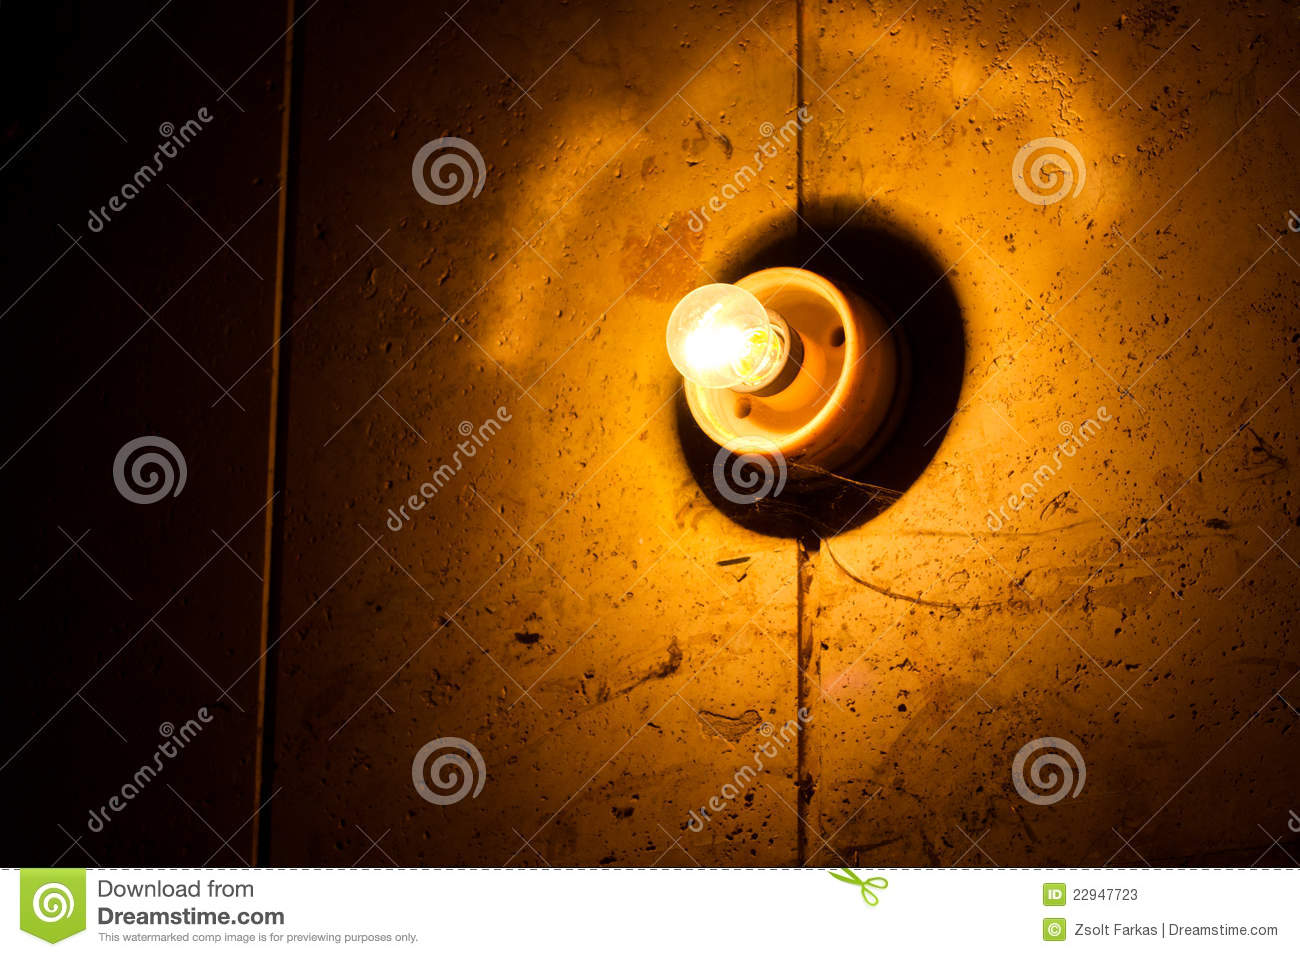 Light bulb on wall stock image image of decoration historical download light bulb on wall stock image image of decoration historical 22947723 aloadofball Images